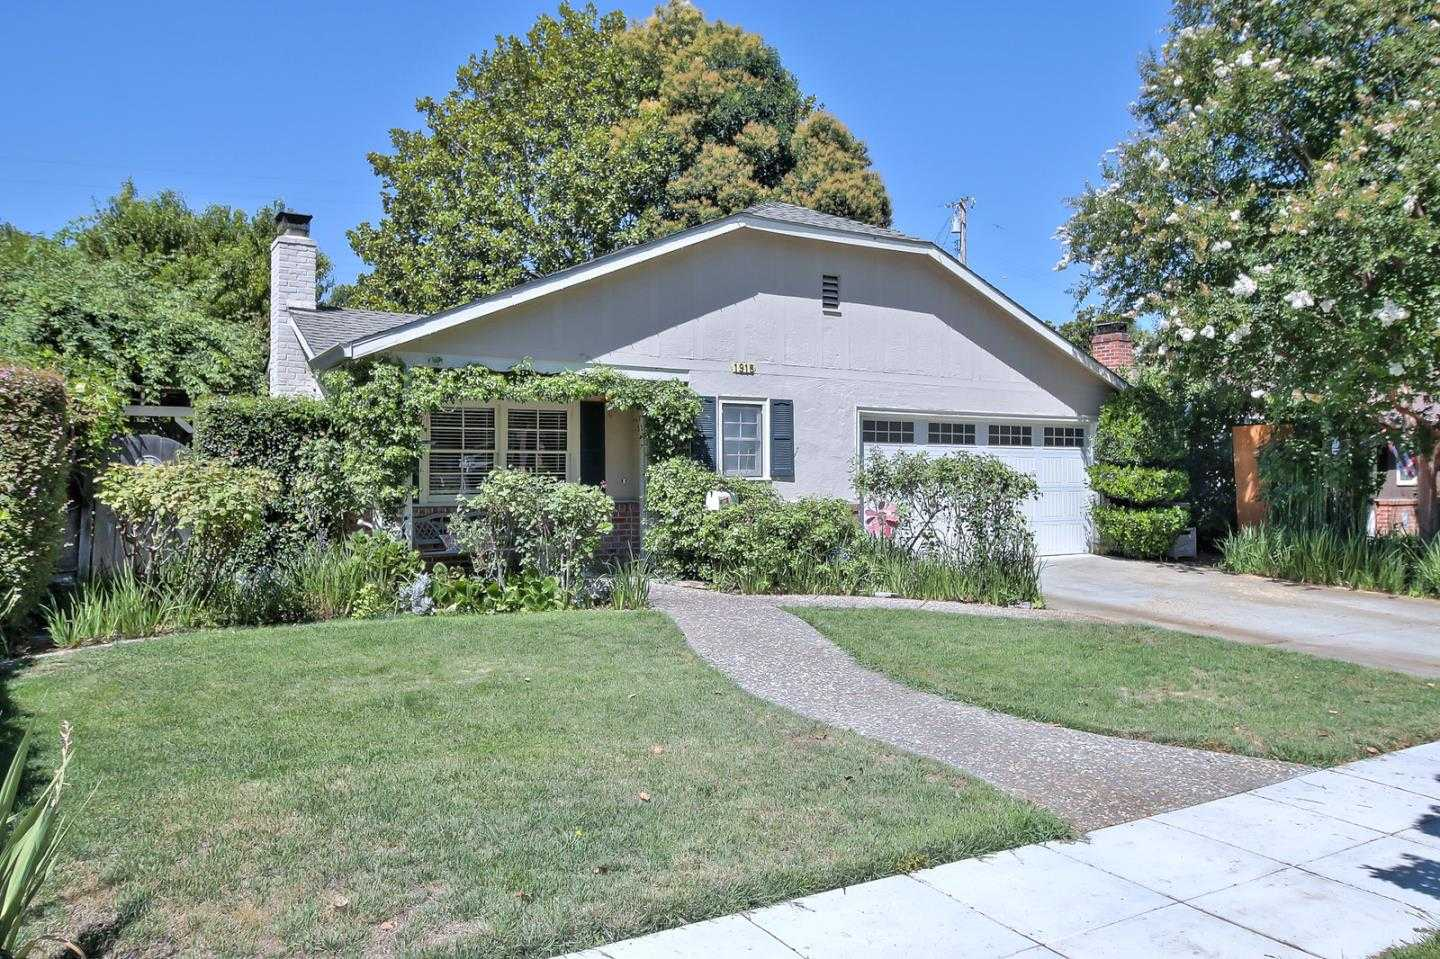 $1,195,000 - 3Br/2Ba -  for Sale in San Jose